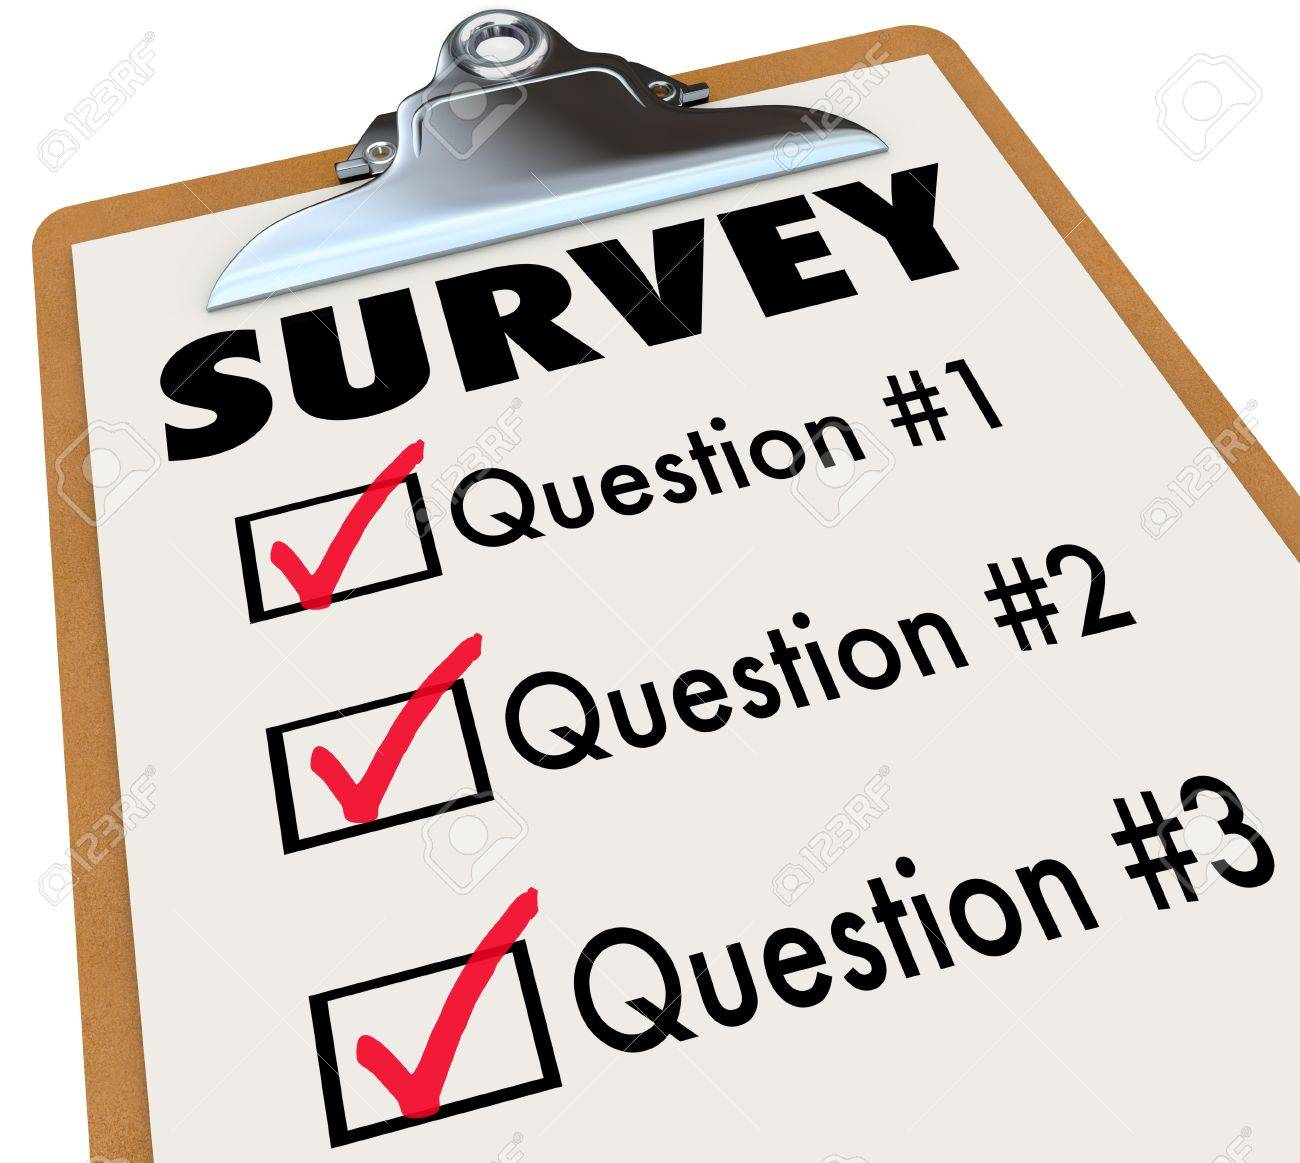 A checklist on a wooden clipboard with the word Survey and a list of questions to gather customer or audience feedback, reviews and reactions to important matters or products Stock Photo - 17800986